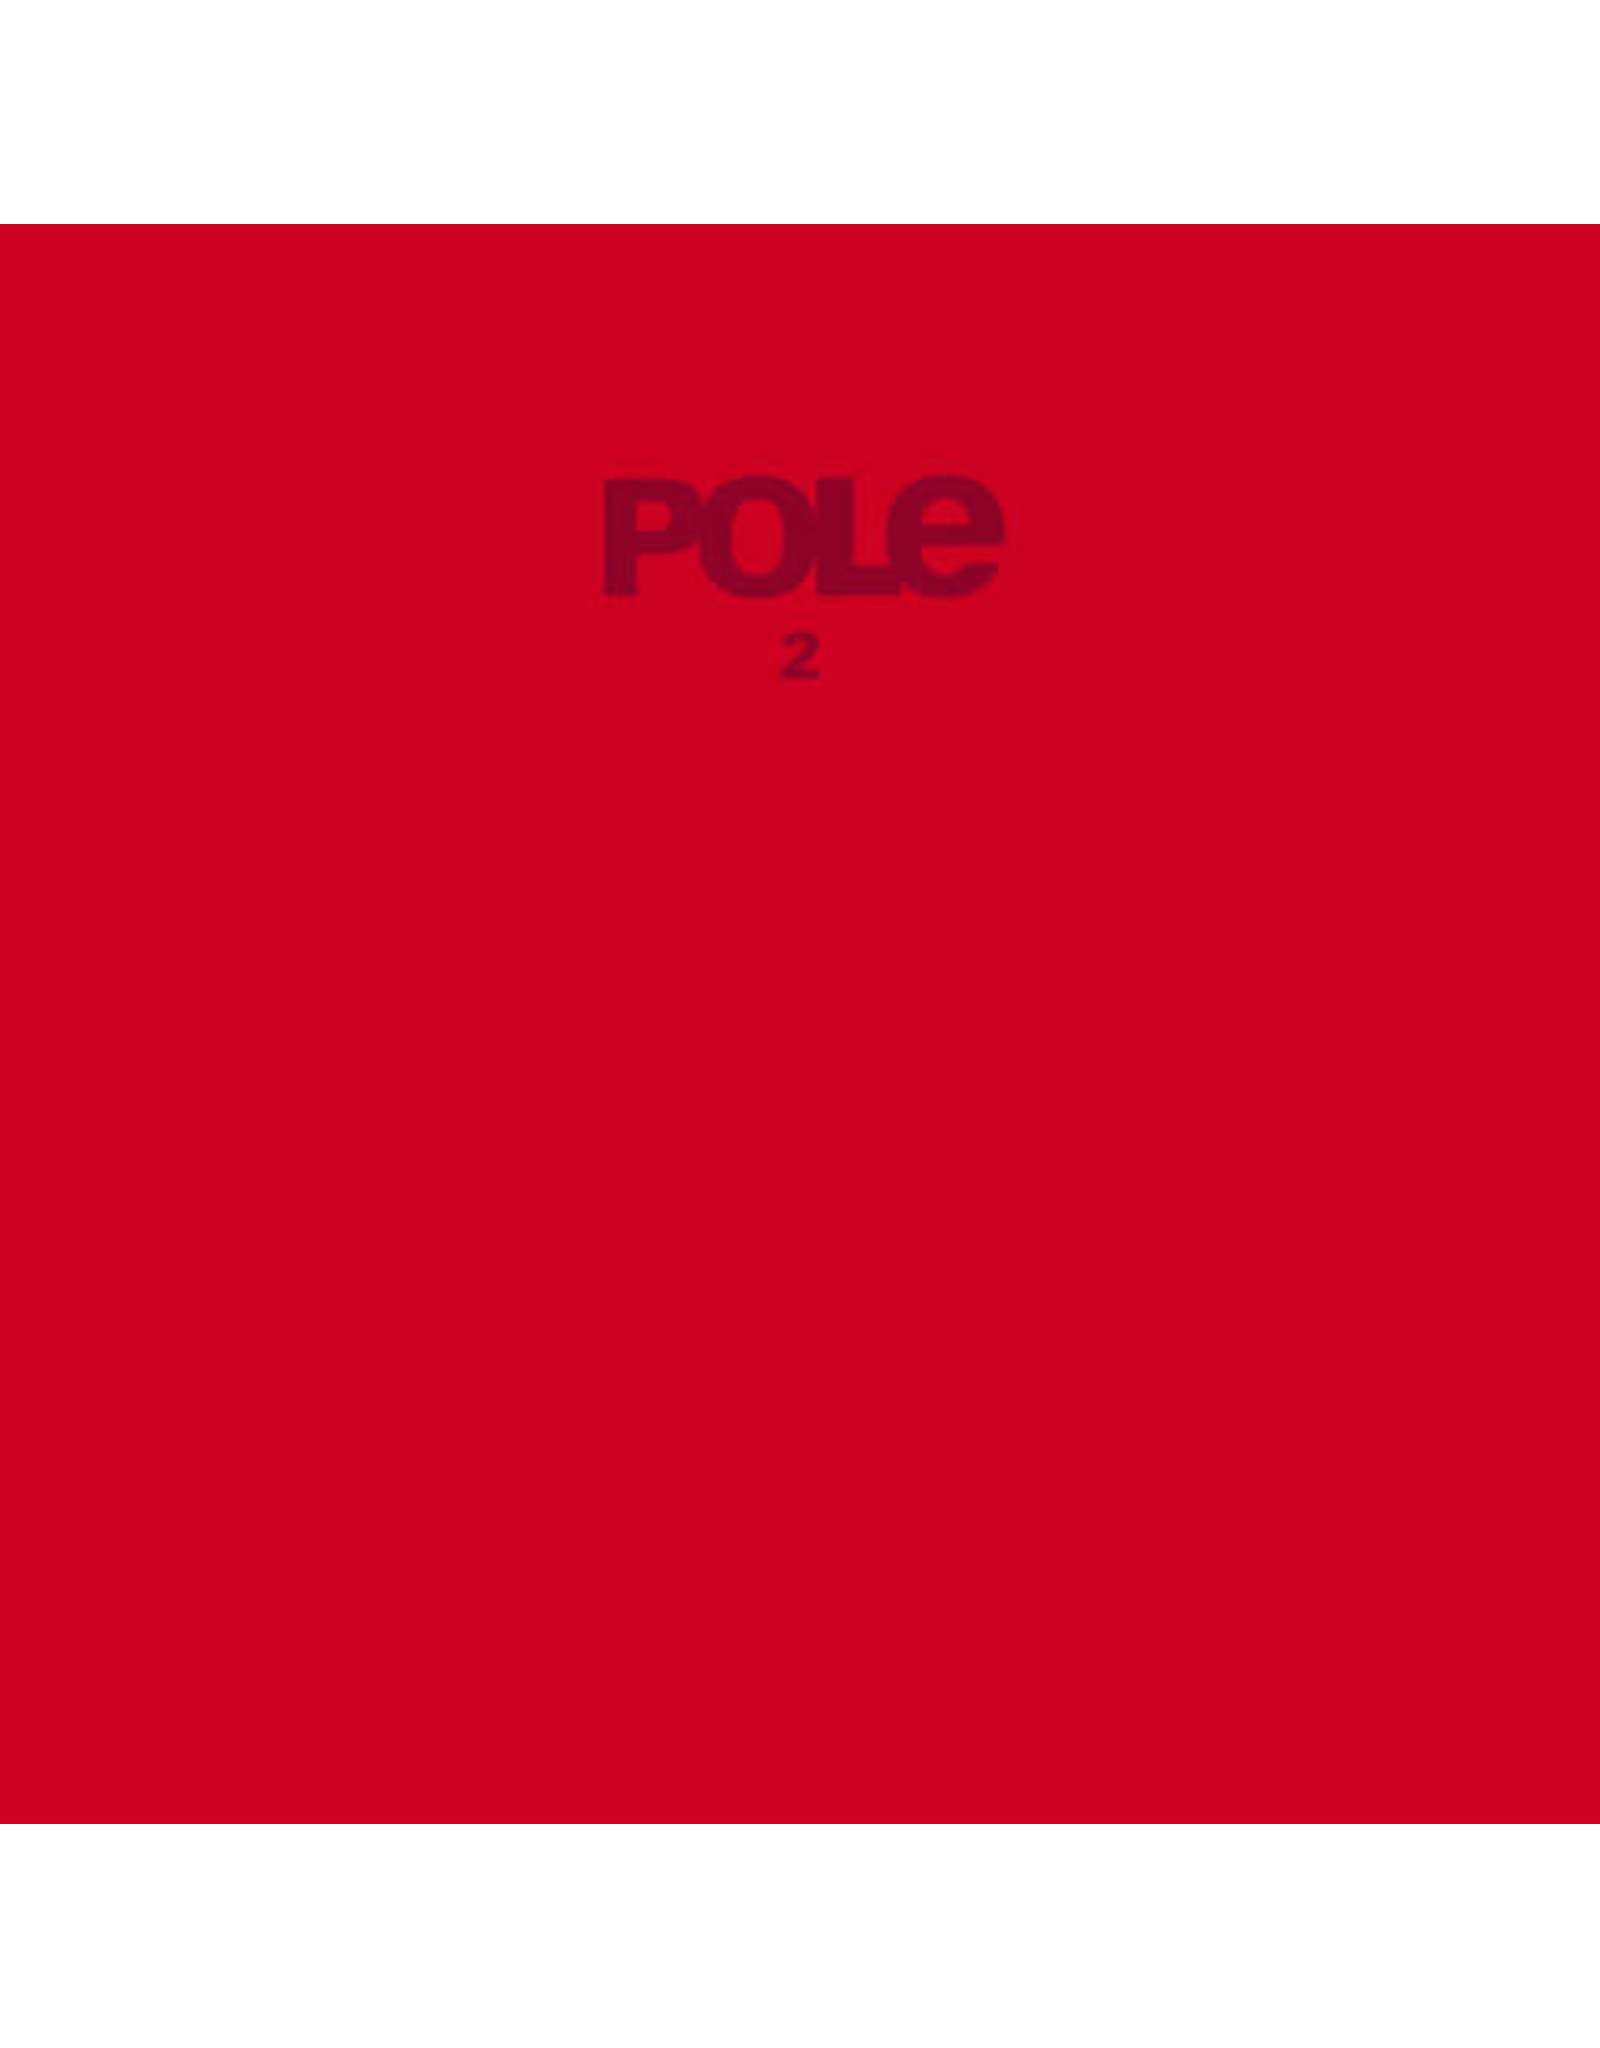 New Vinyl Pole - Pole 2 LP